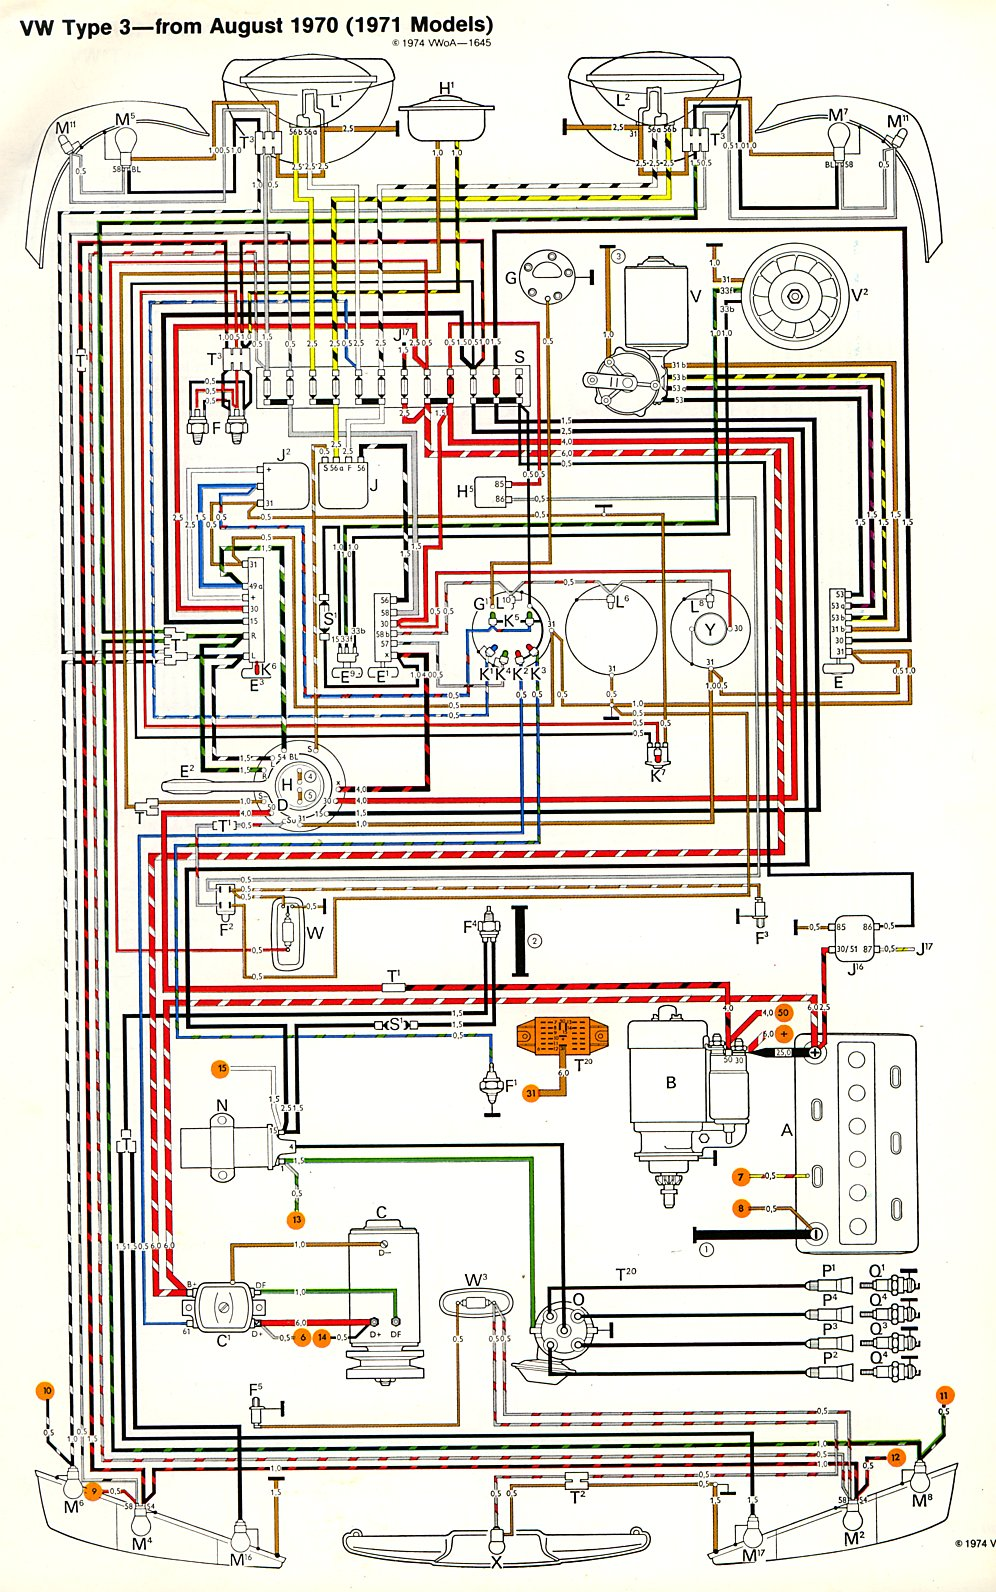 thesamba.com :: type 3 wiring diagrams 2005 chevy 2500 roof light wiring diagram wiring diagram 5s1f #6